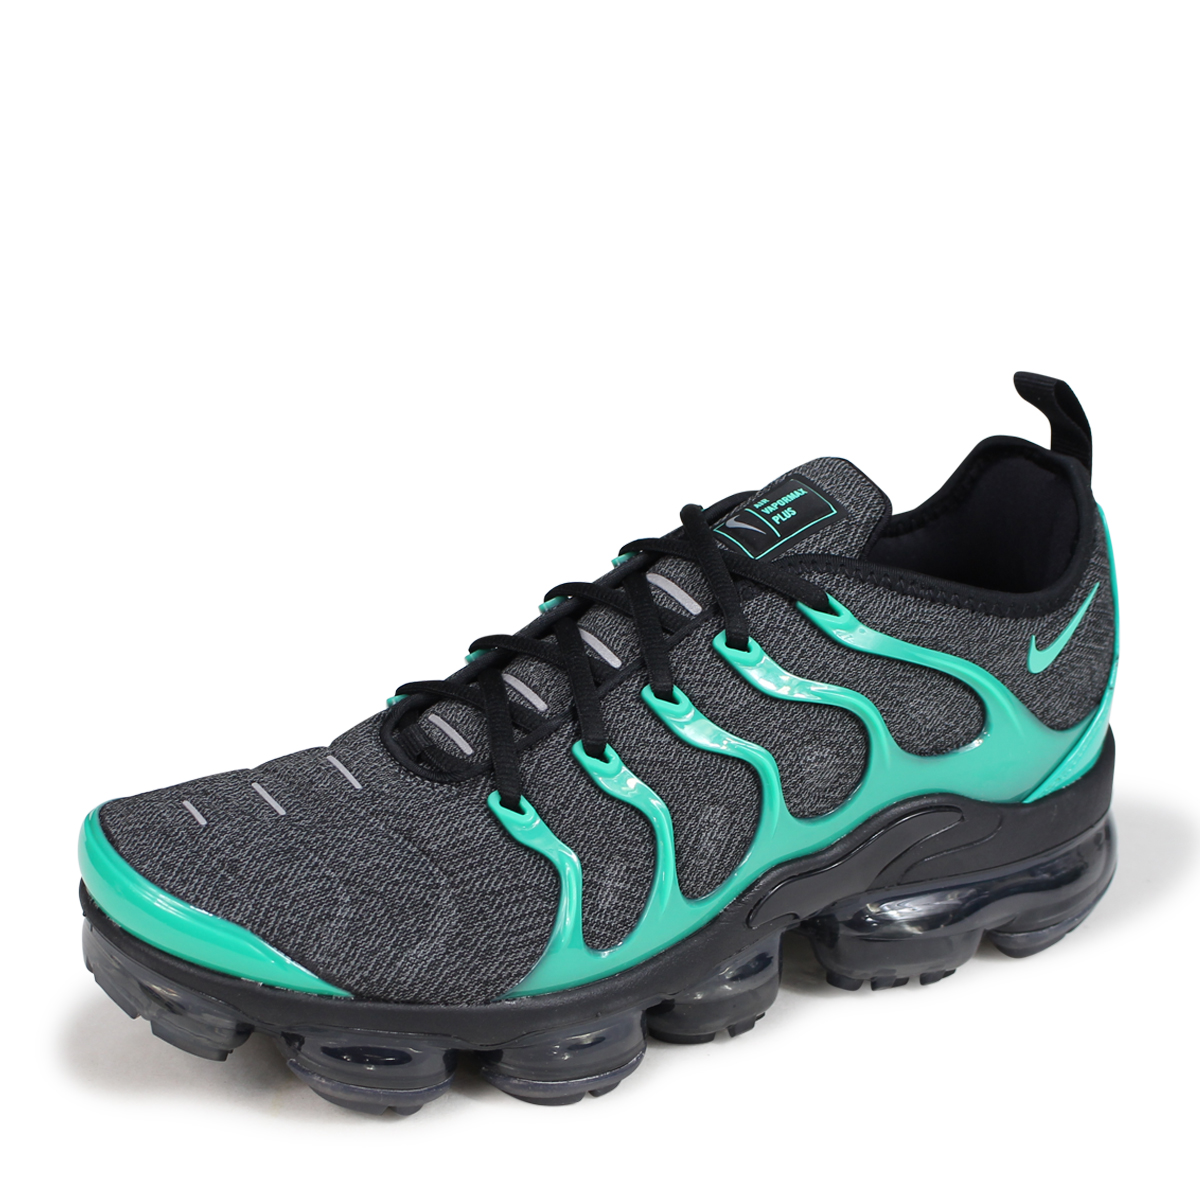 d938789863b ALLSPORTS  NIKE AIR VAPORMAX PLUS Nike air vapor max plus sneakers ...